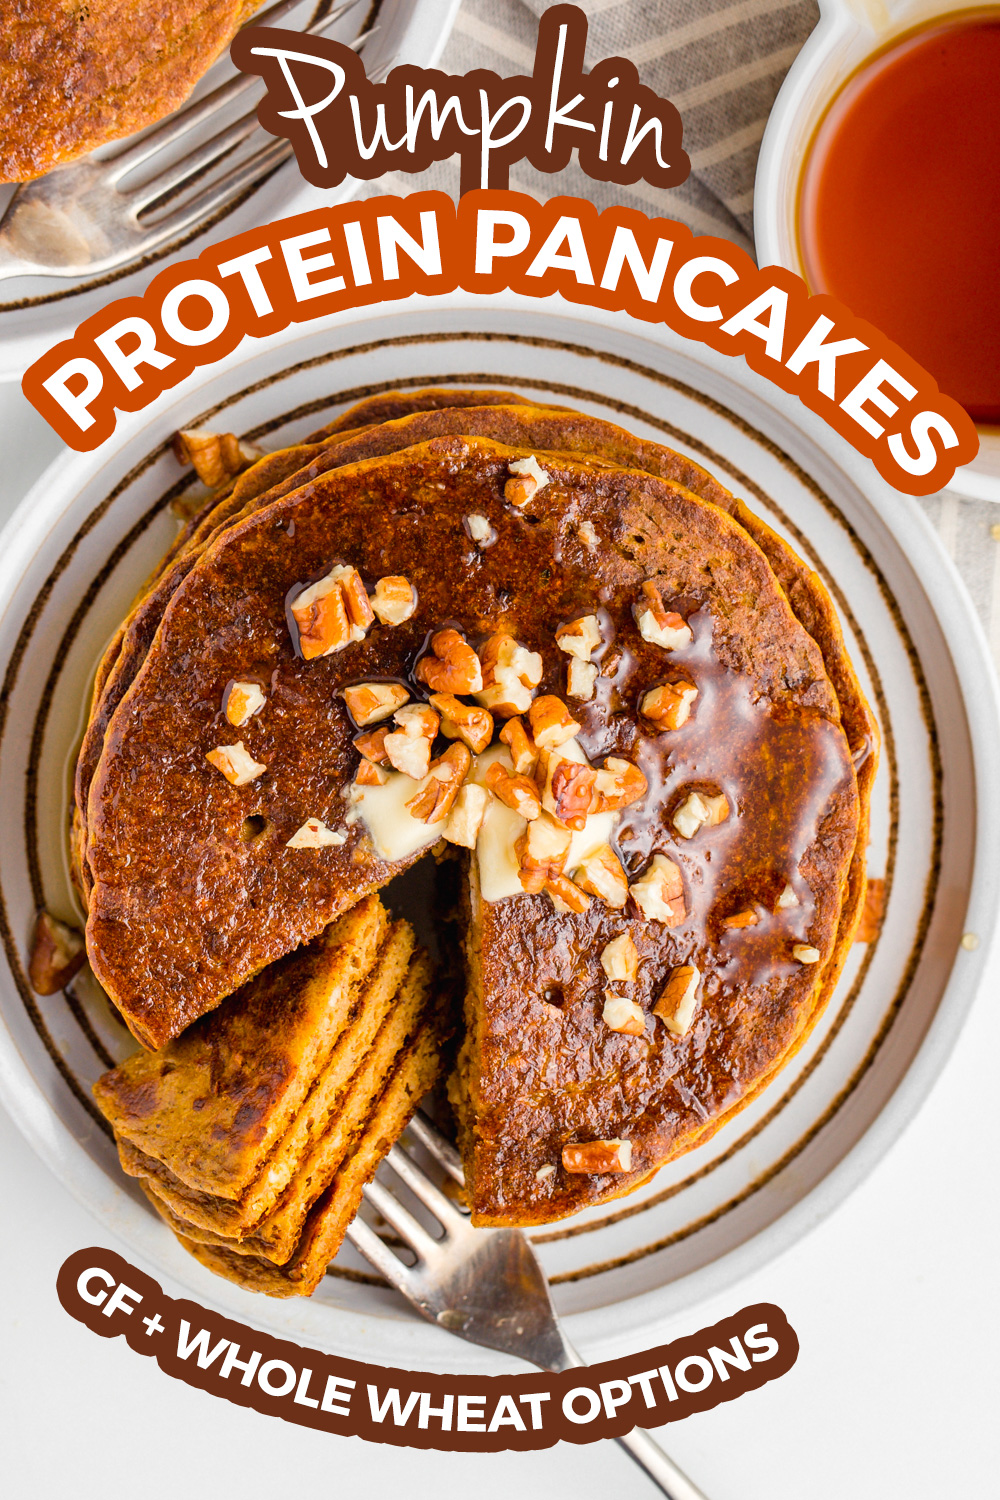 These easy pumpkin pancakes have an amazing texture! Unlike other healthy pumpkin pancakes, these aren't at all bready and taste amazing. With whole wheat and gluten-free options.